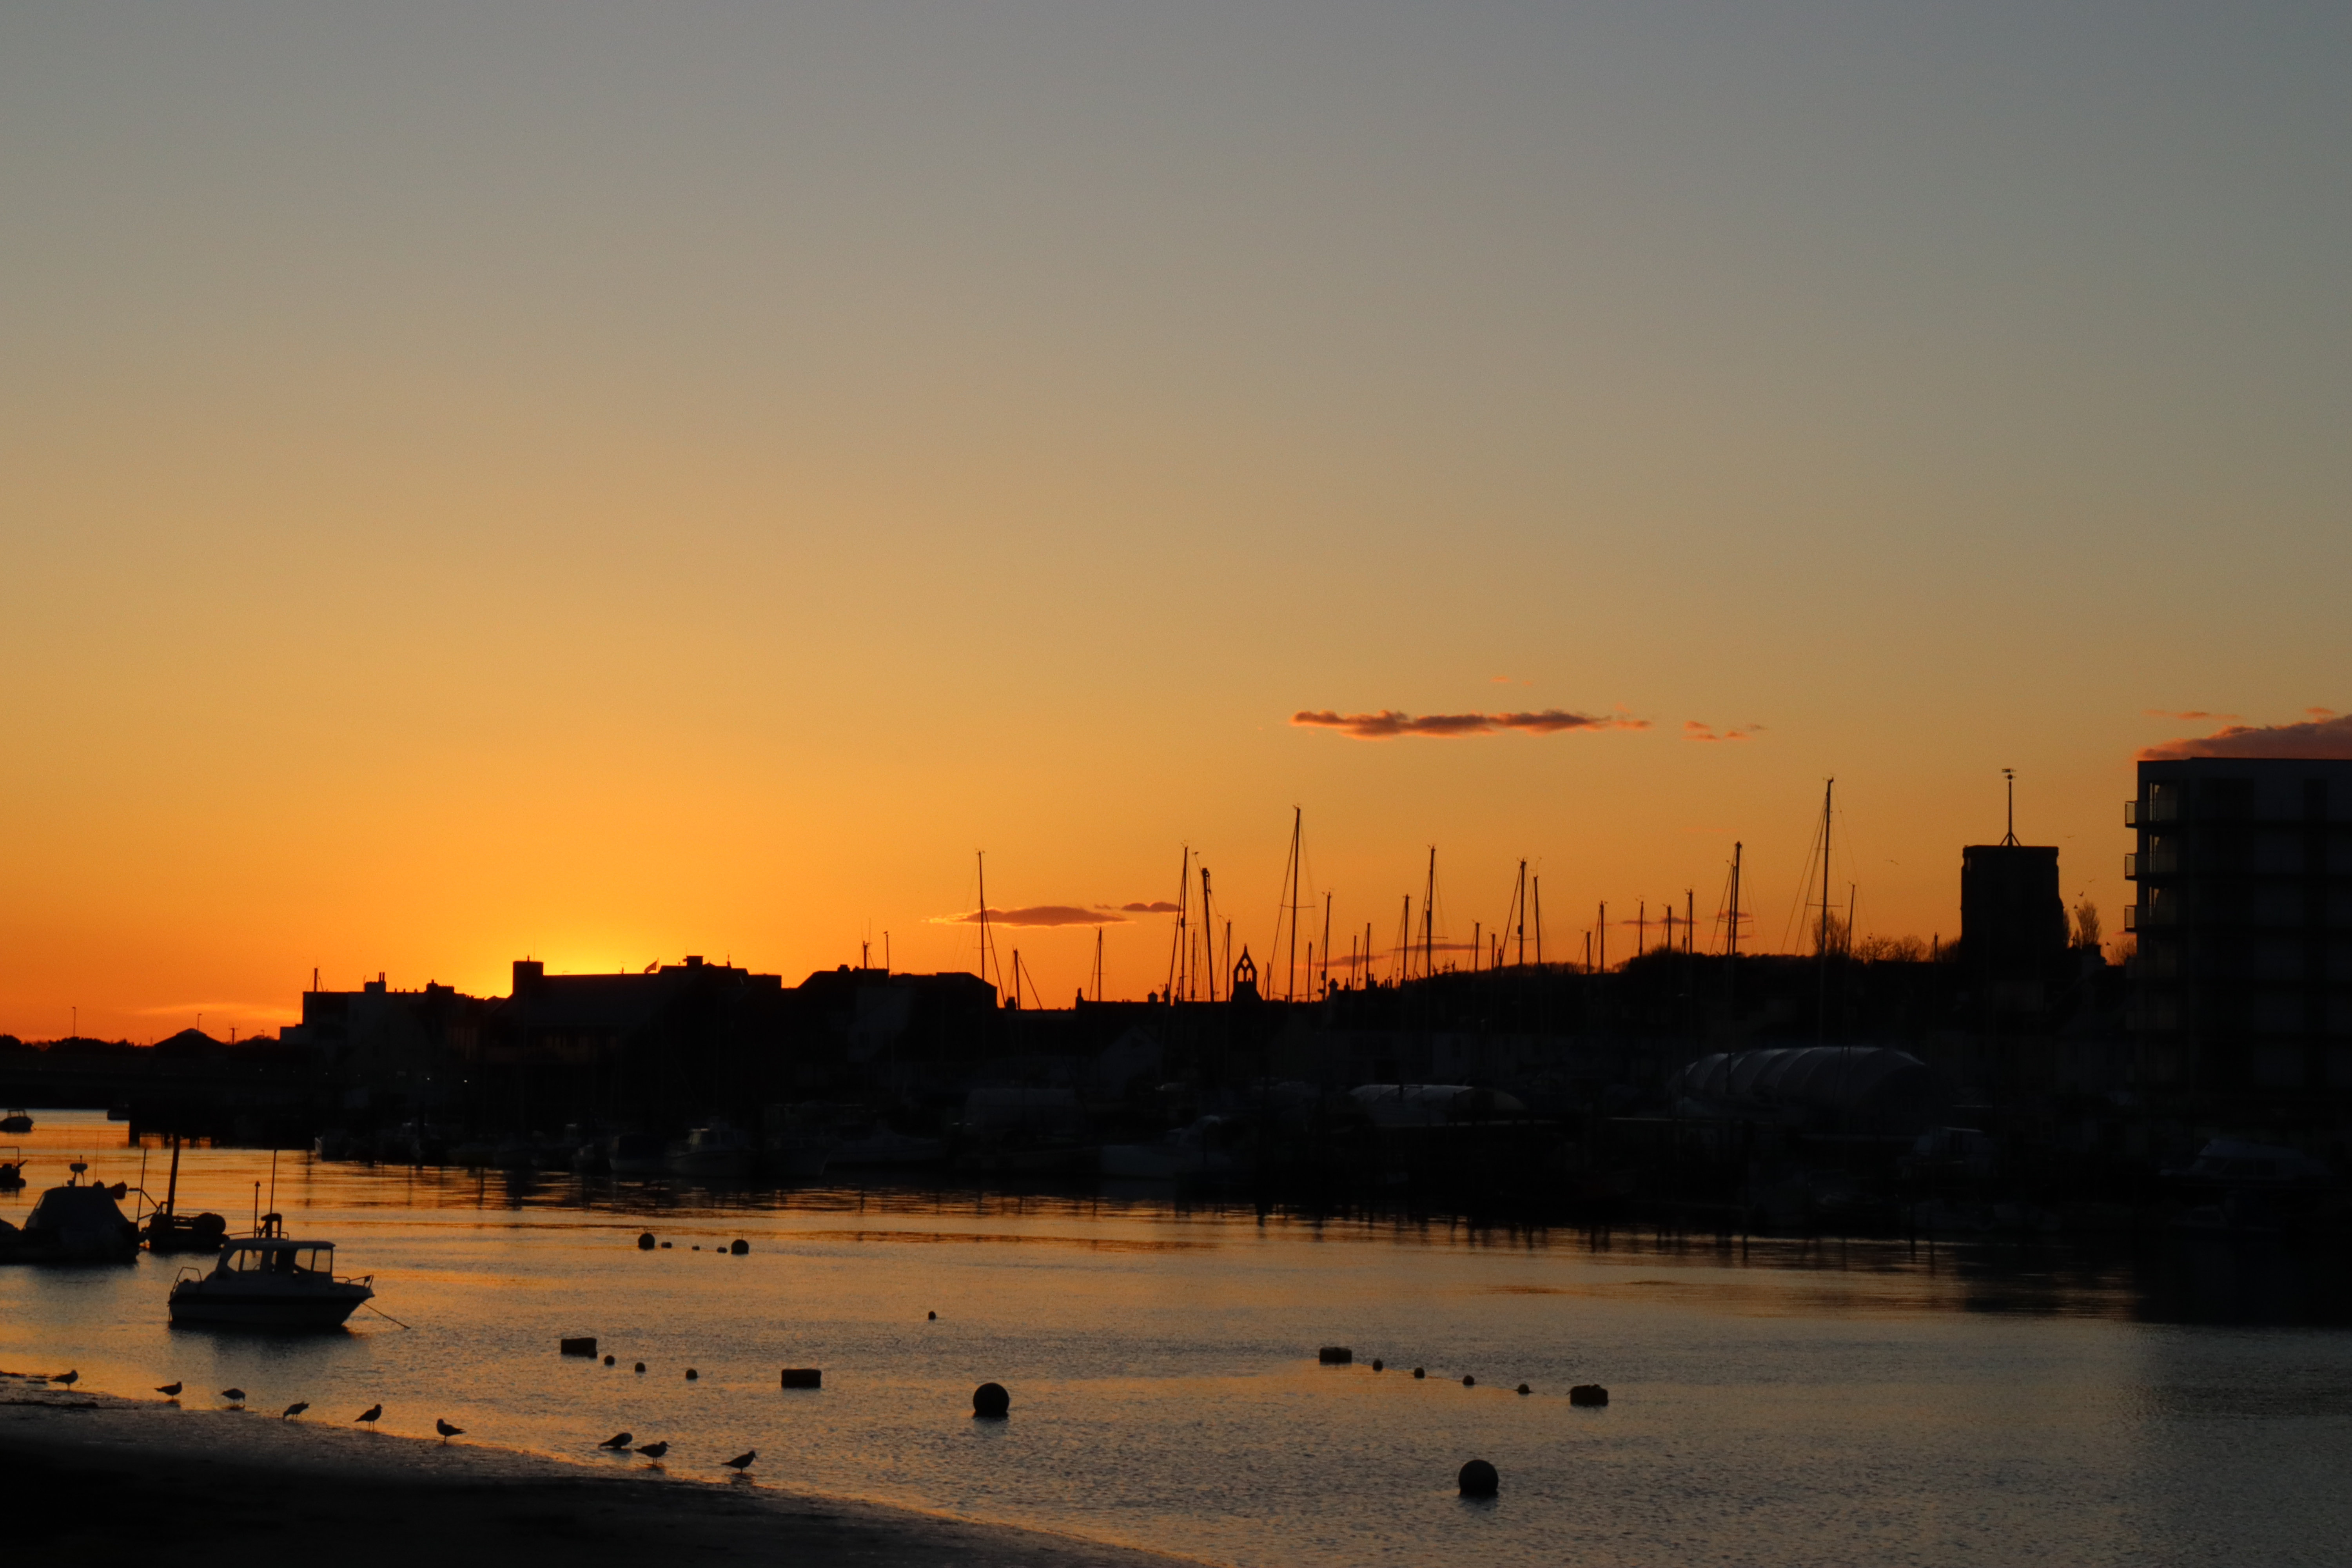 Sun setting behind the rooftops of Shoreham town. Silhouettes of small boats and birds line the river Adur below.